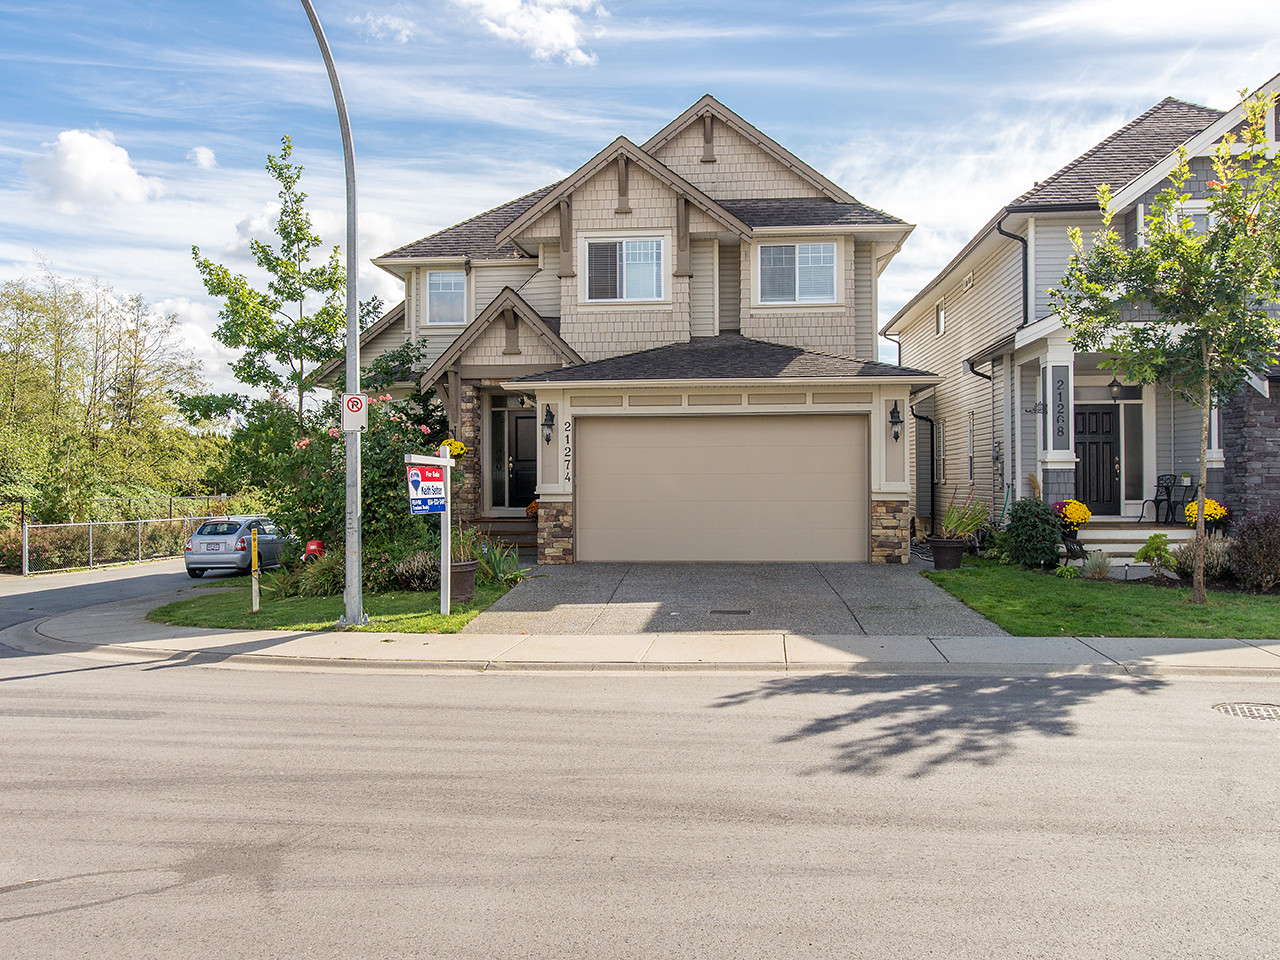 21274 83A Ave for MLS